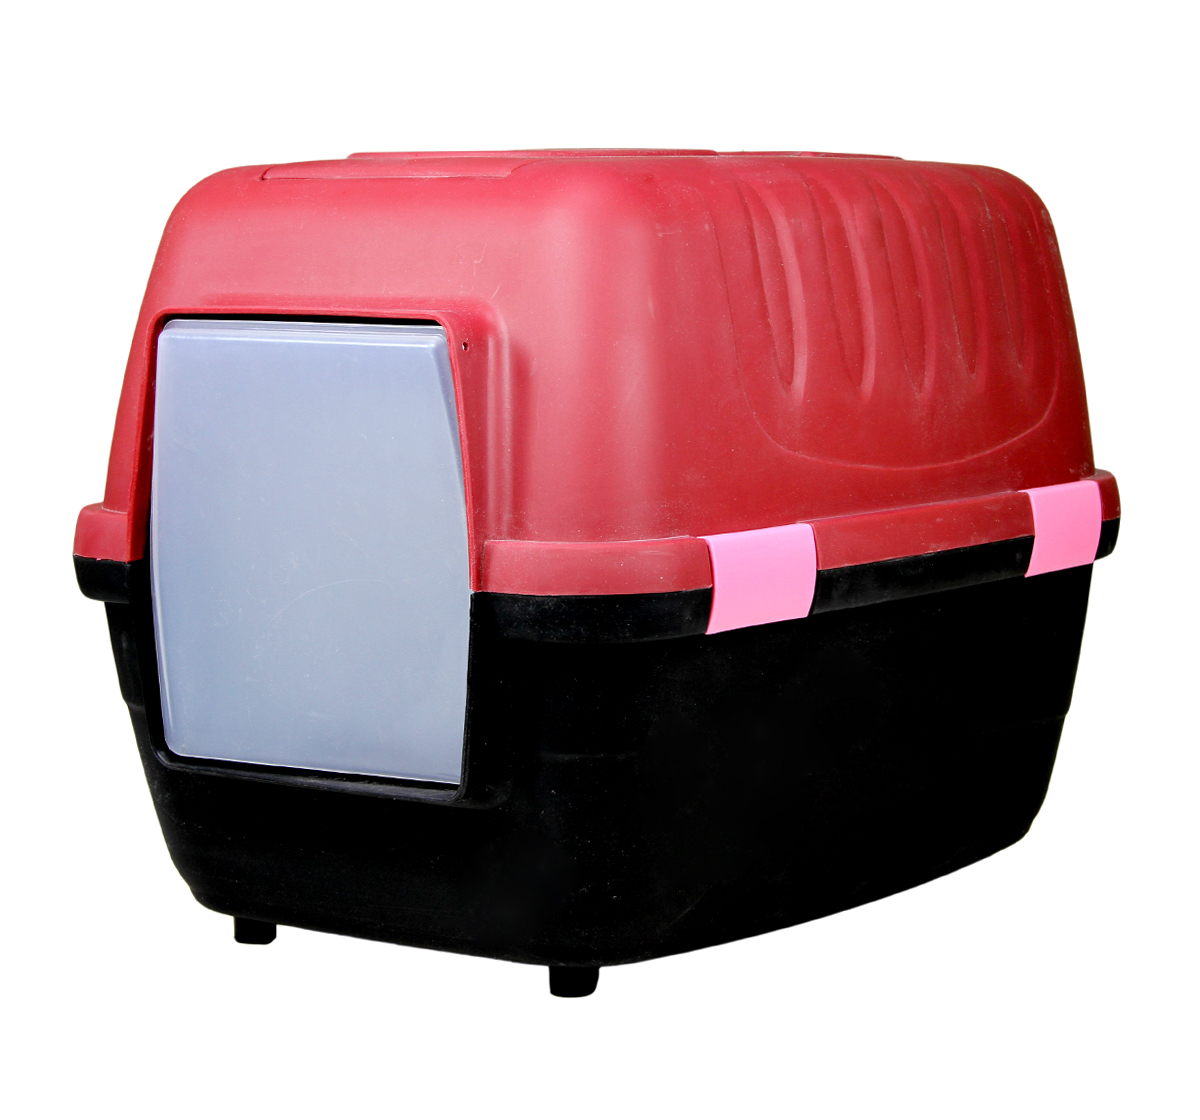 Covered Cat Litter Box Lxwxh 21x15 5x16 Inch